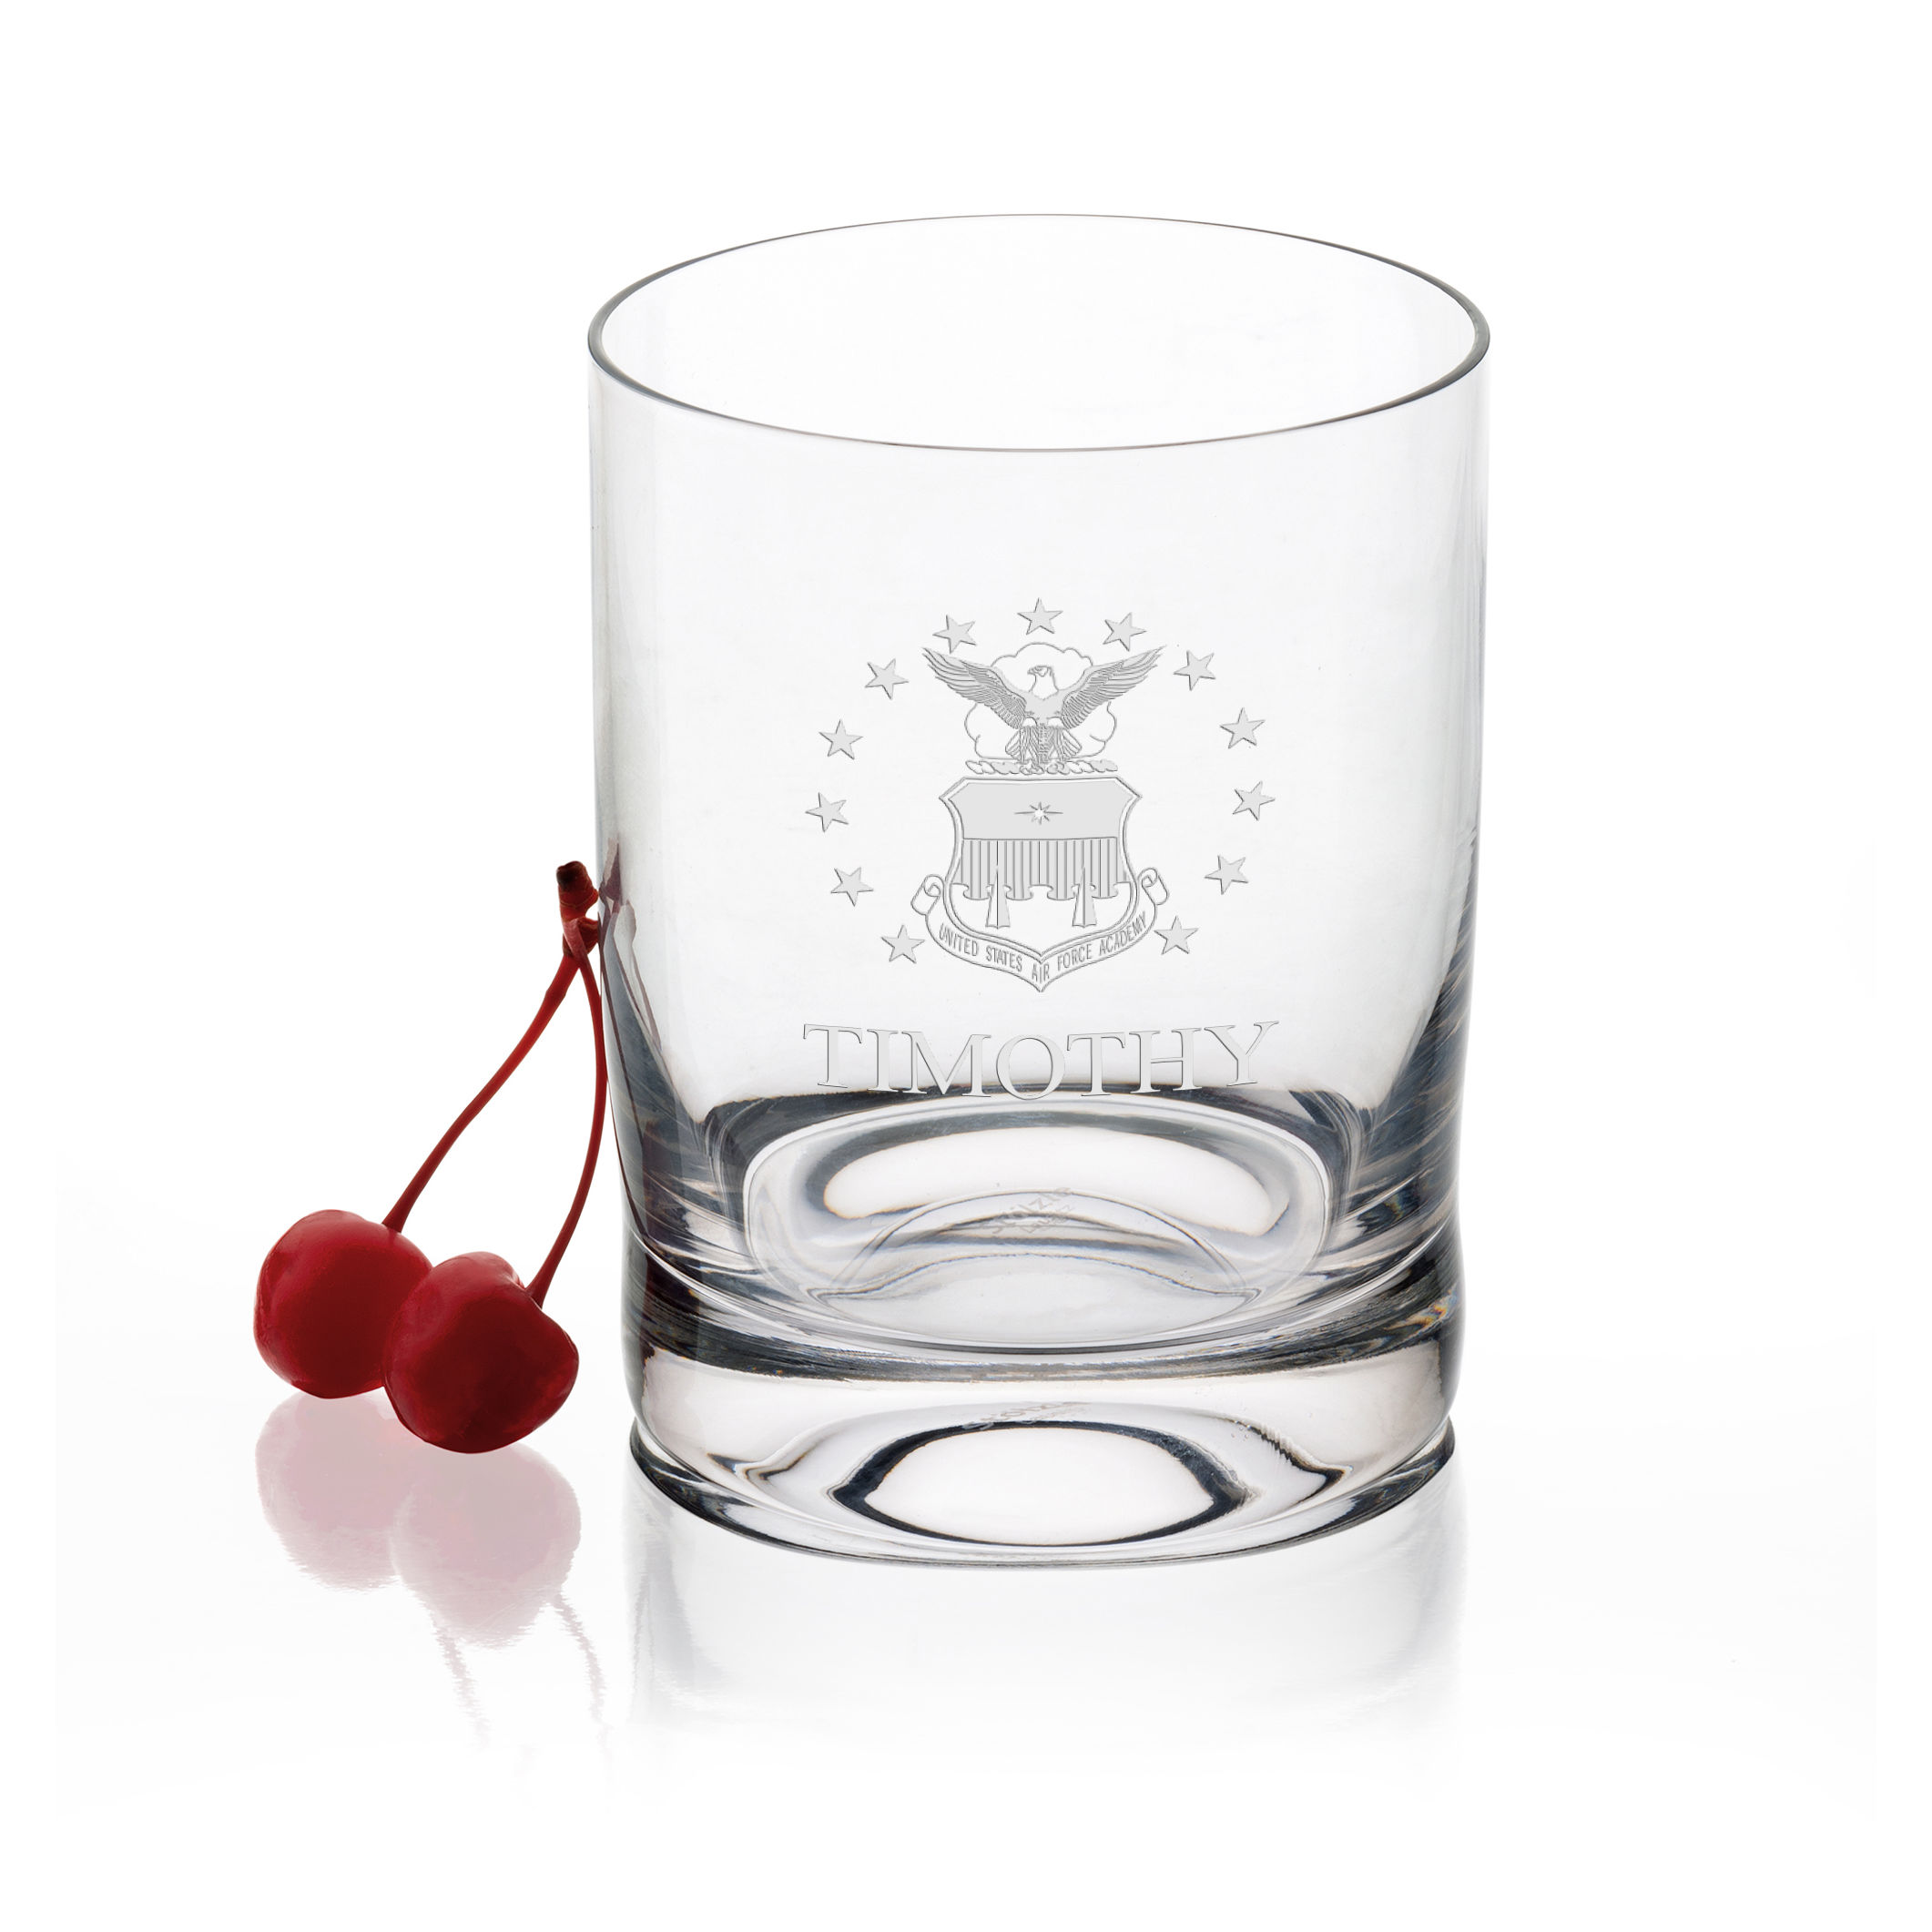 USAFA Tumbler Glasses - Set of 4